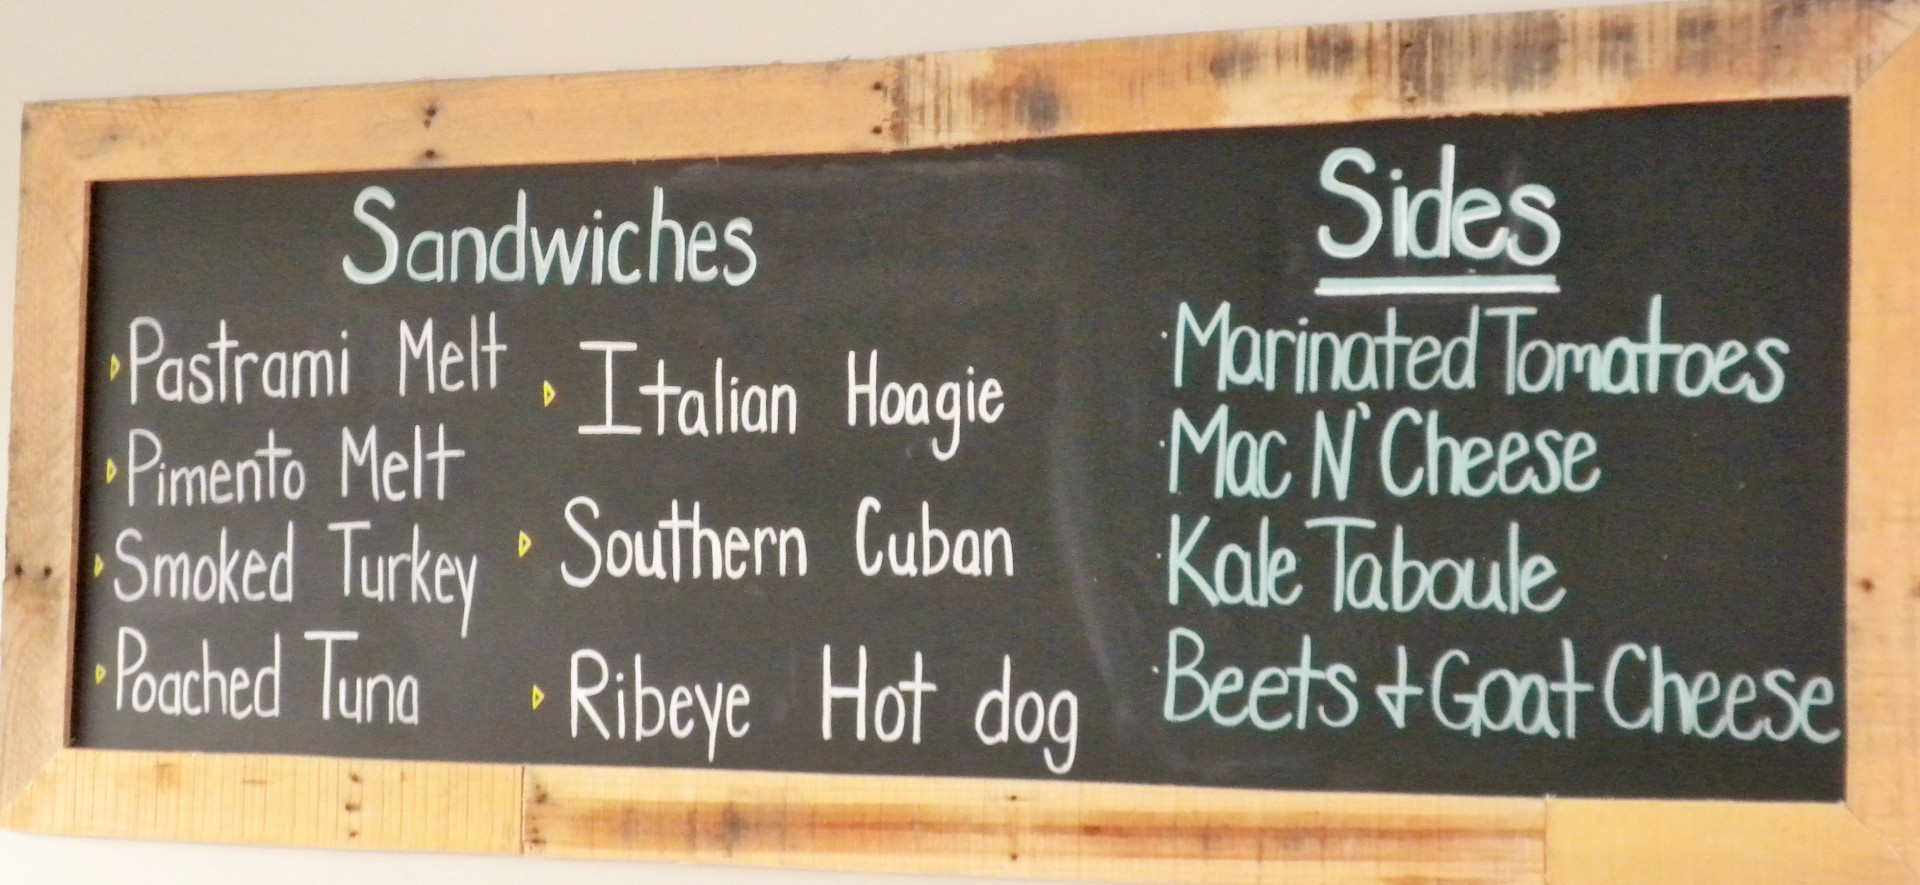 Today's sandwich menu